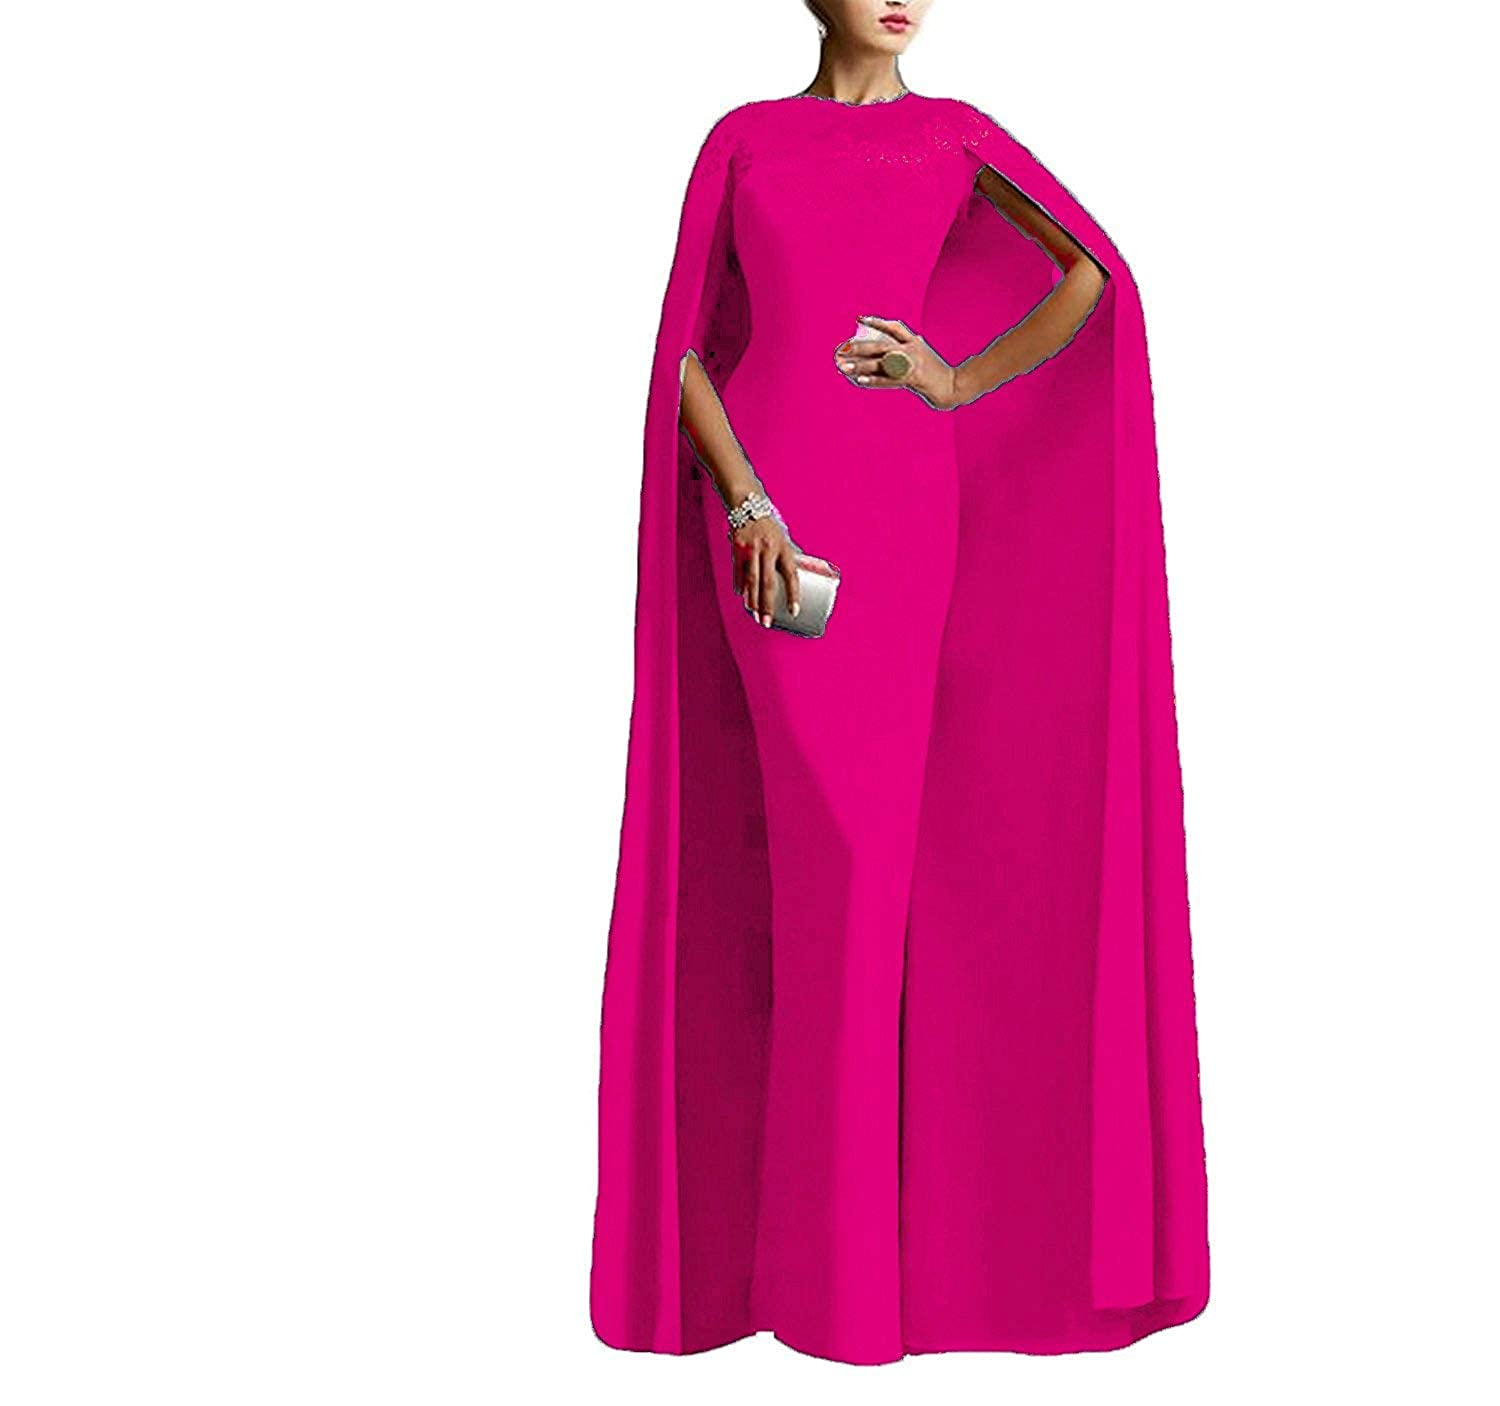 Fuchsia LiBridal Women's Mermaid Prom Evening Party Dress Long Formal Gowns with Cape